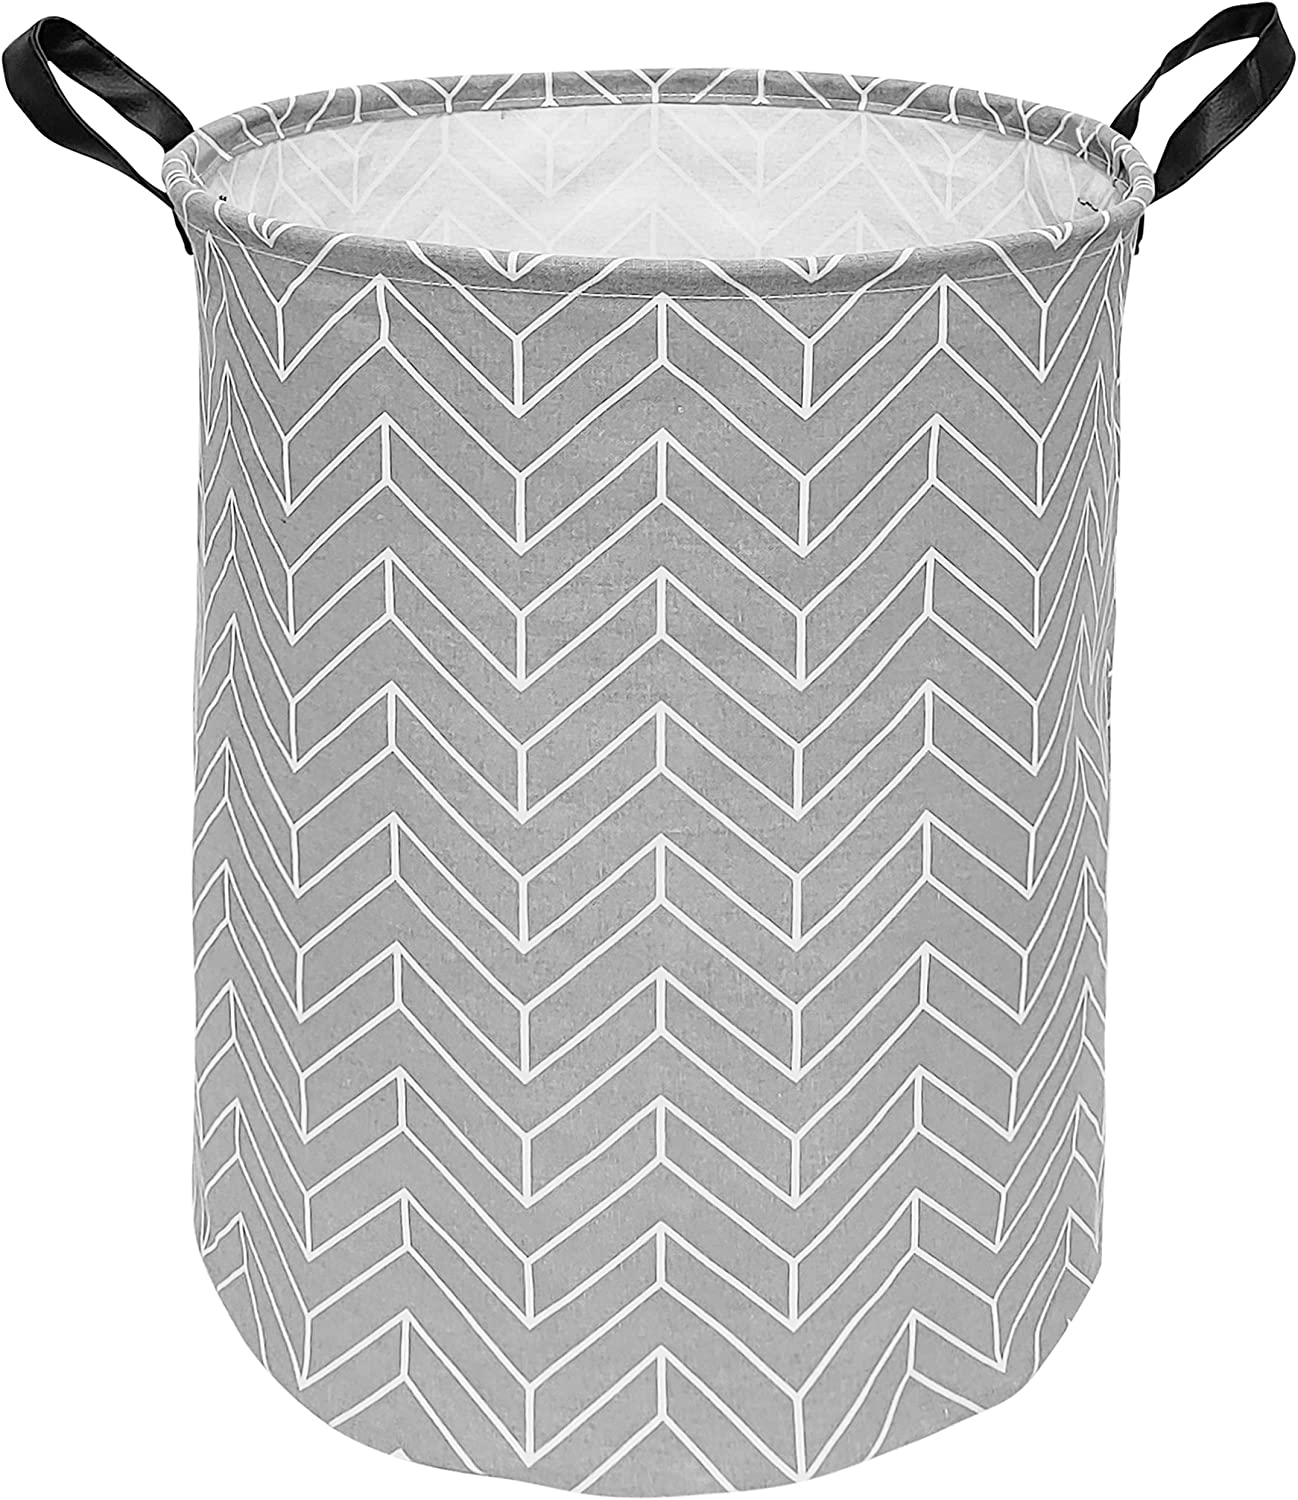 HUAYEE 19.6 Inches Large Laundry Basket Waterproof Round Cotton Linen Collapsible Storage bin with Handles for Hamper Kids Room,Toy Storage(Geometric)